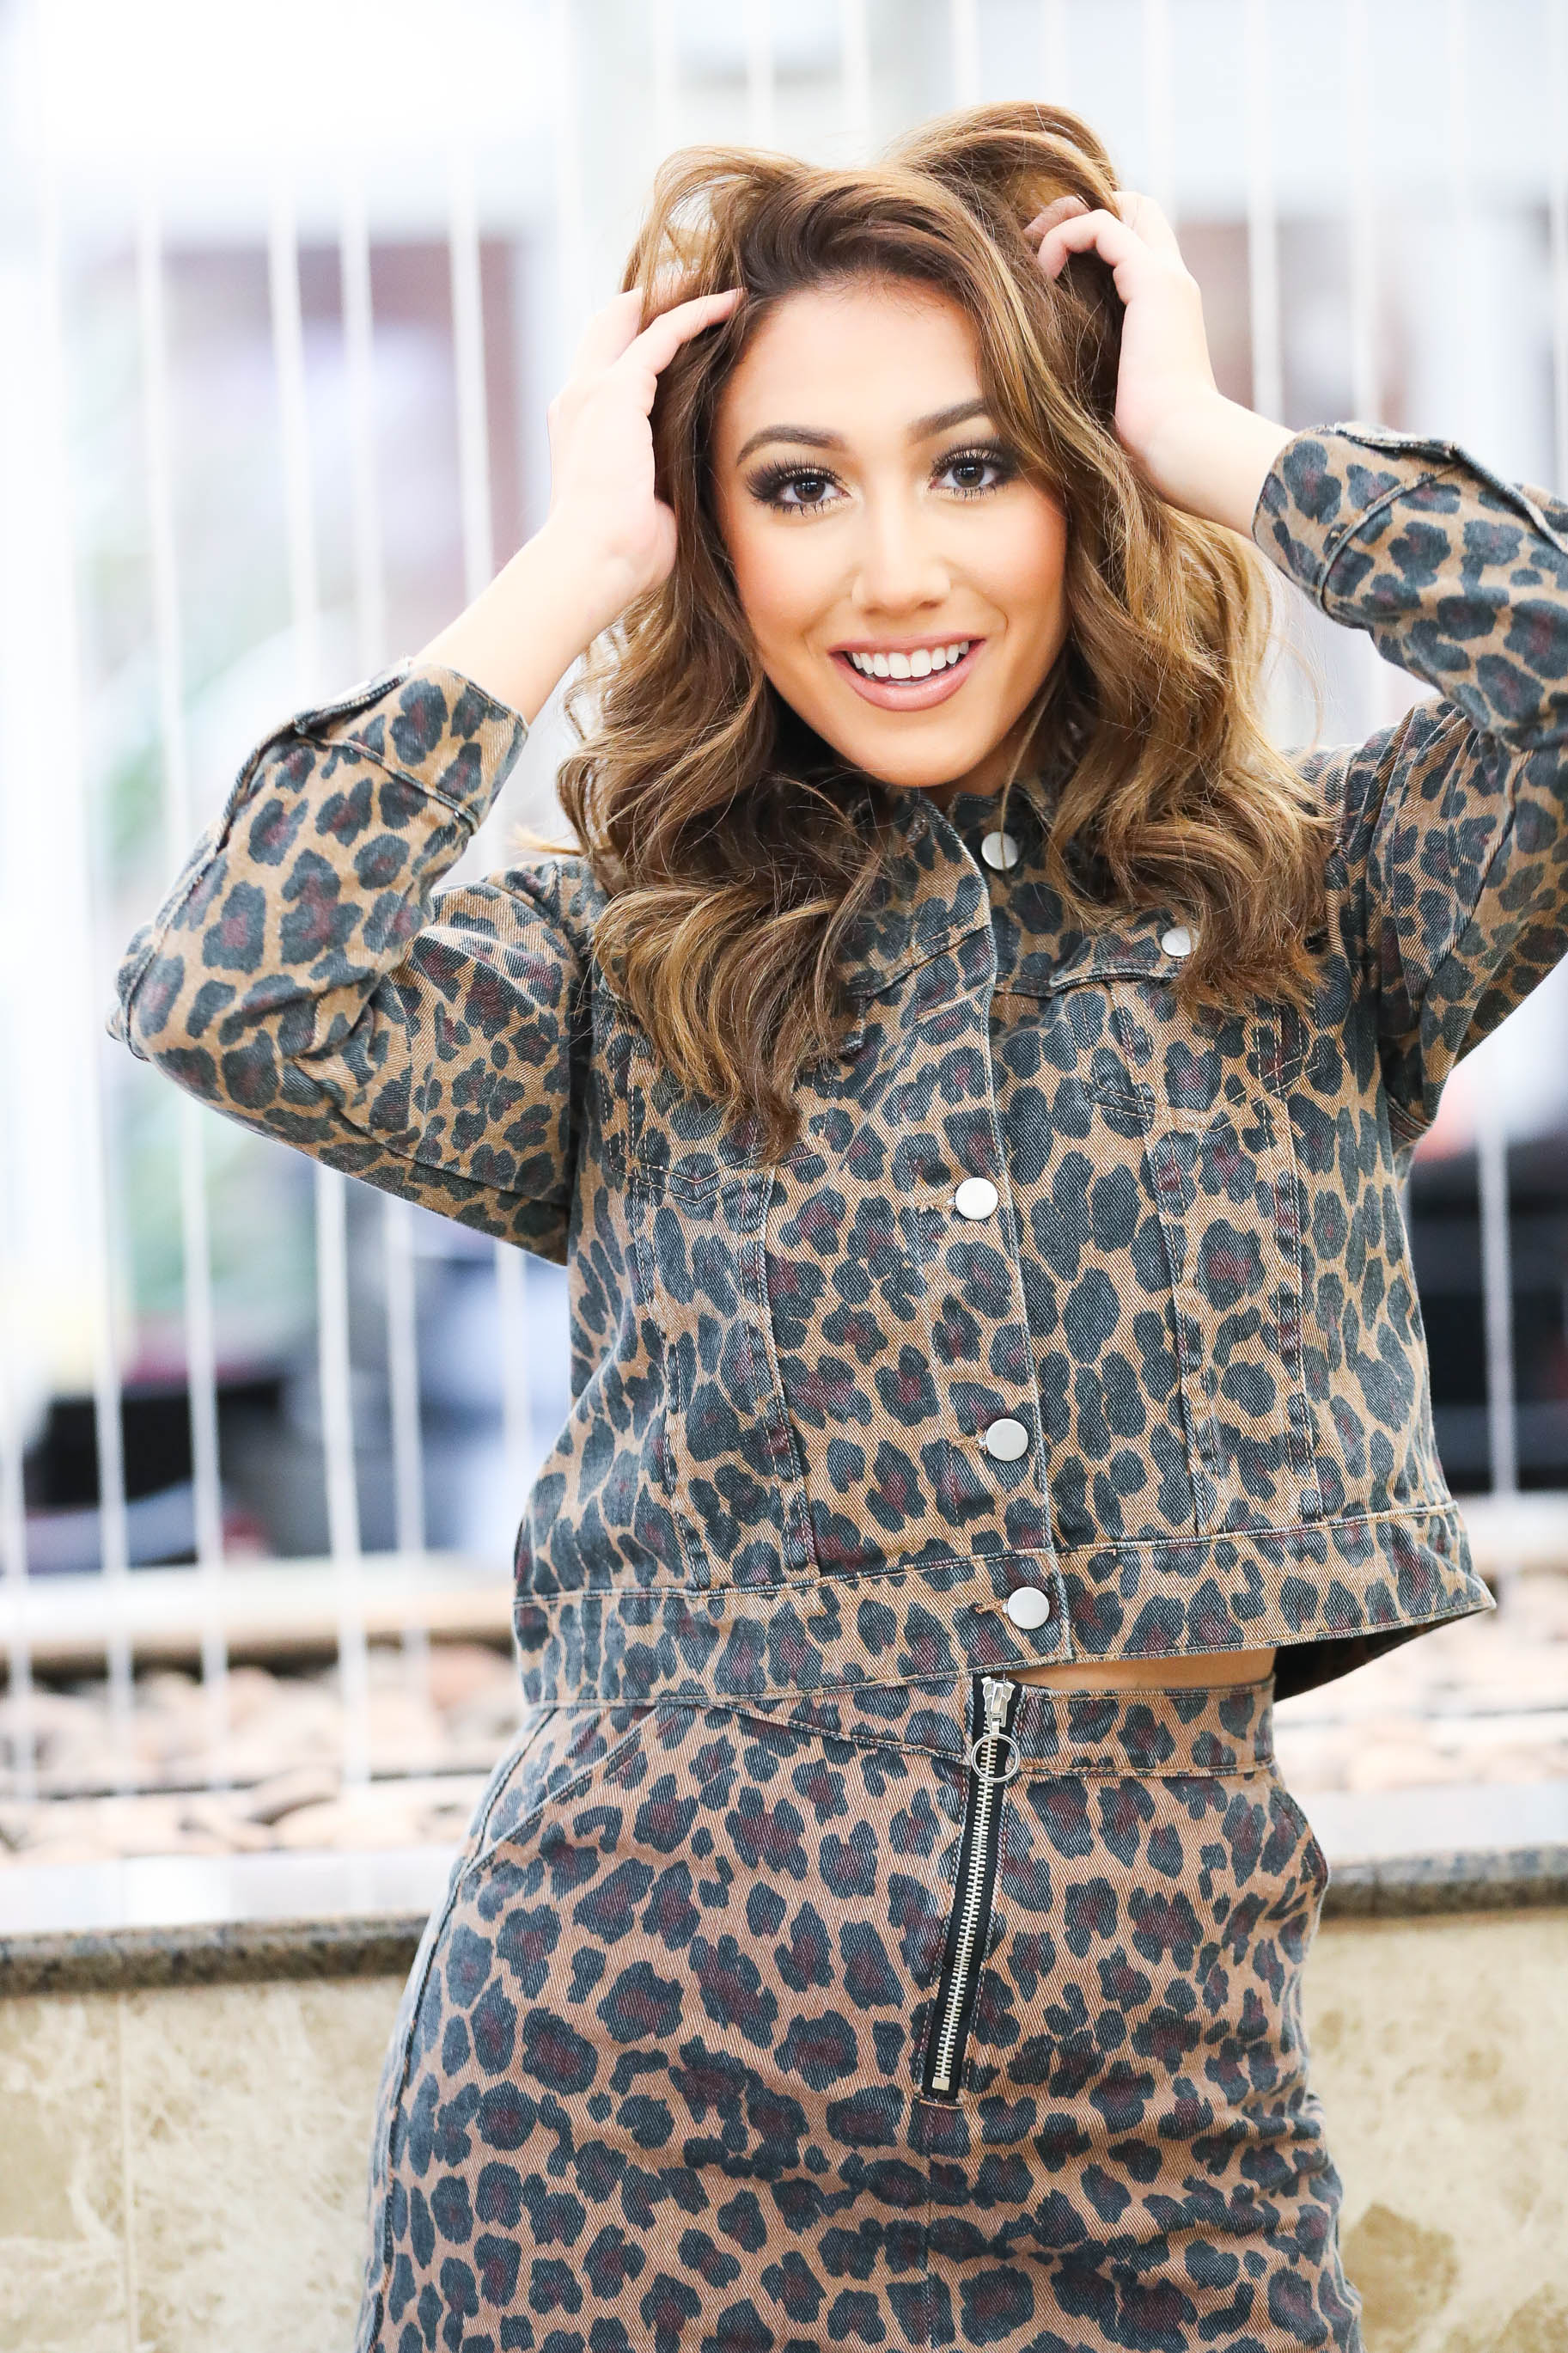 Cheetah Sister Denim Jacket - The Flawless Babe Boutique